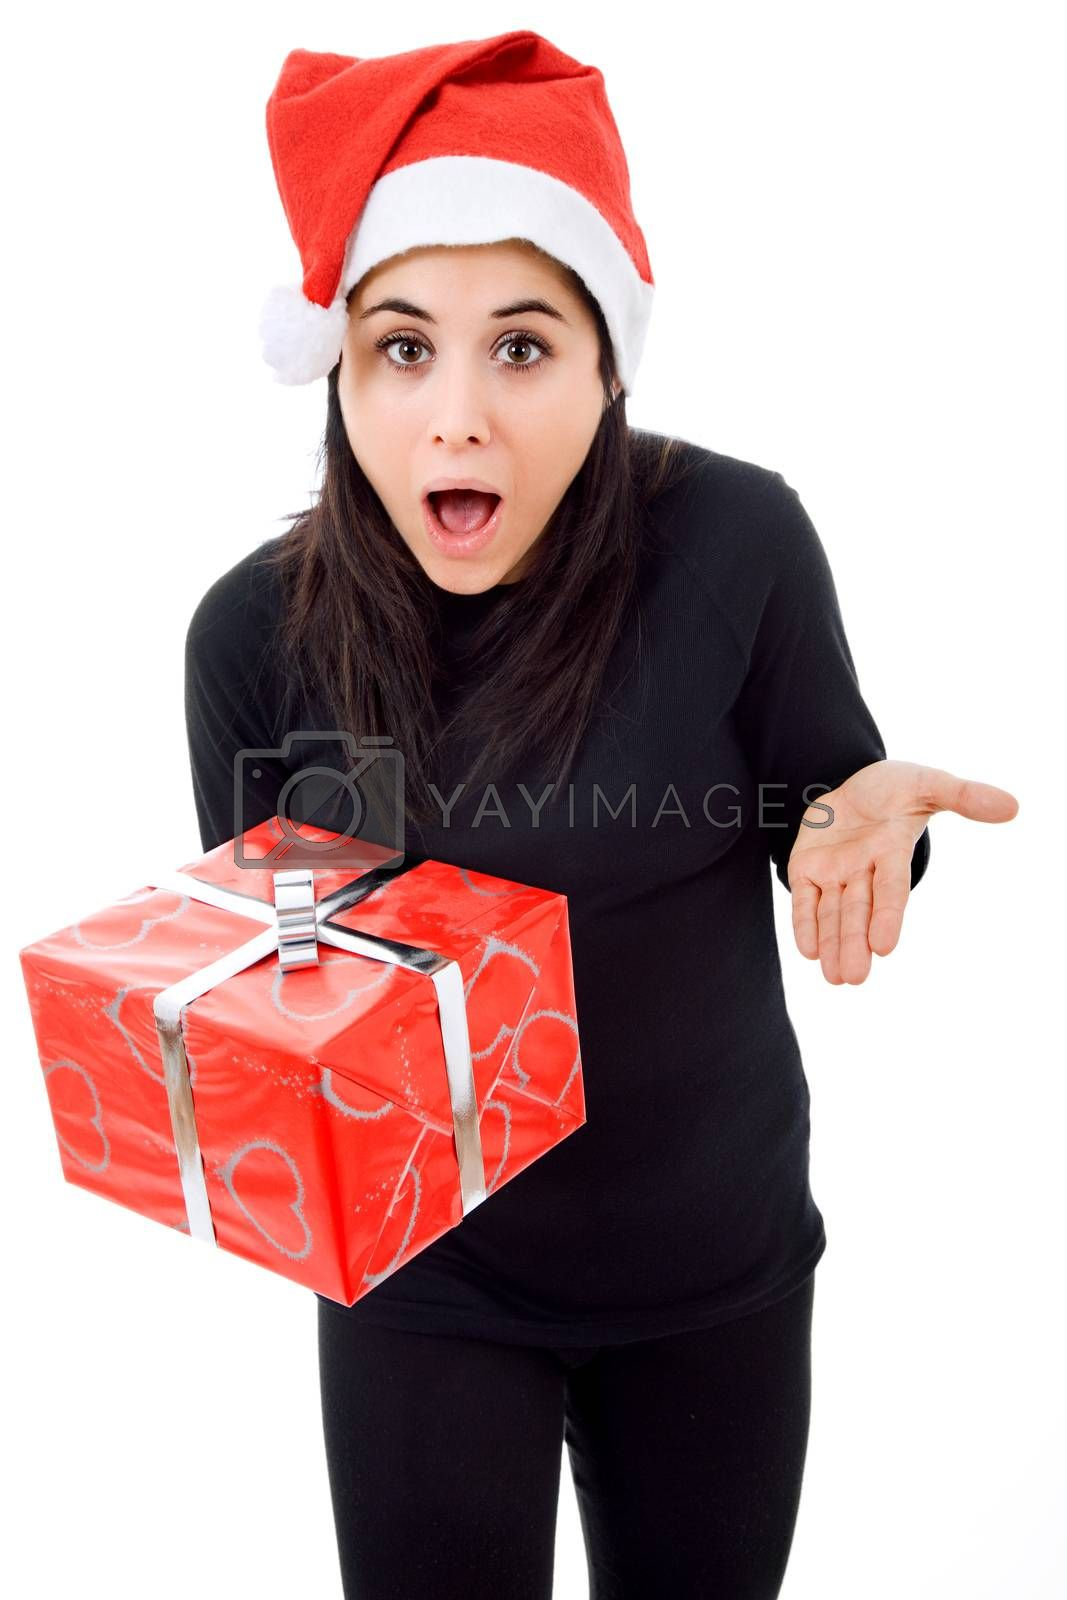 Royalty free image of christmas gift by zittto